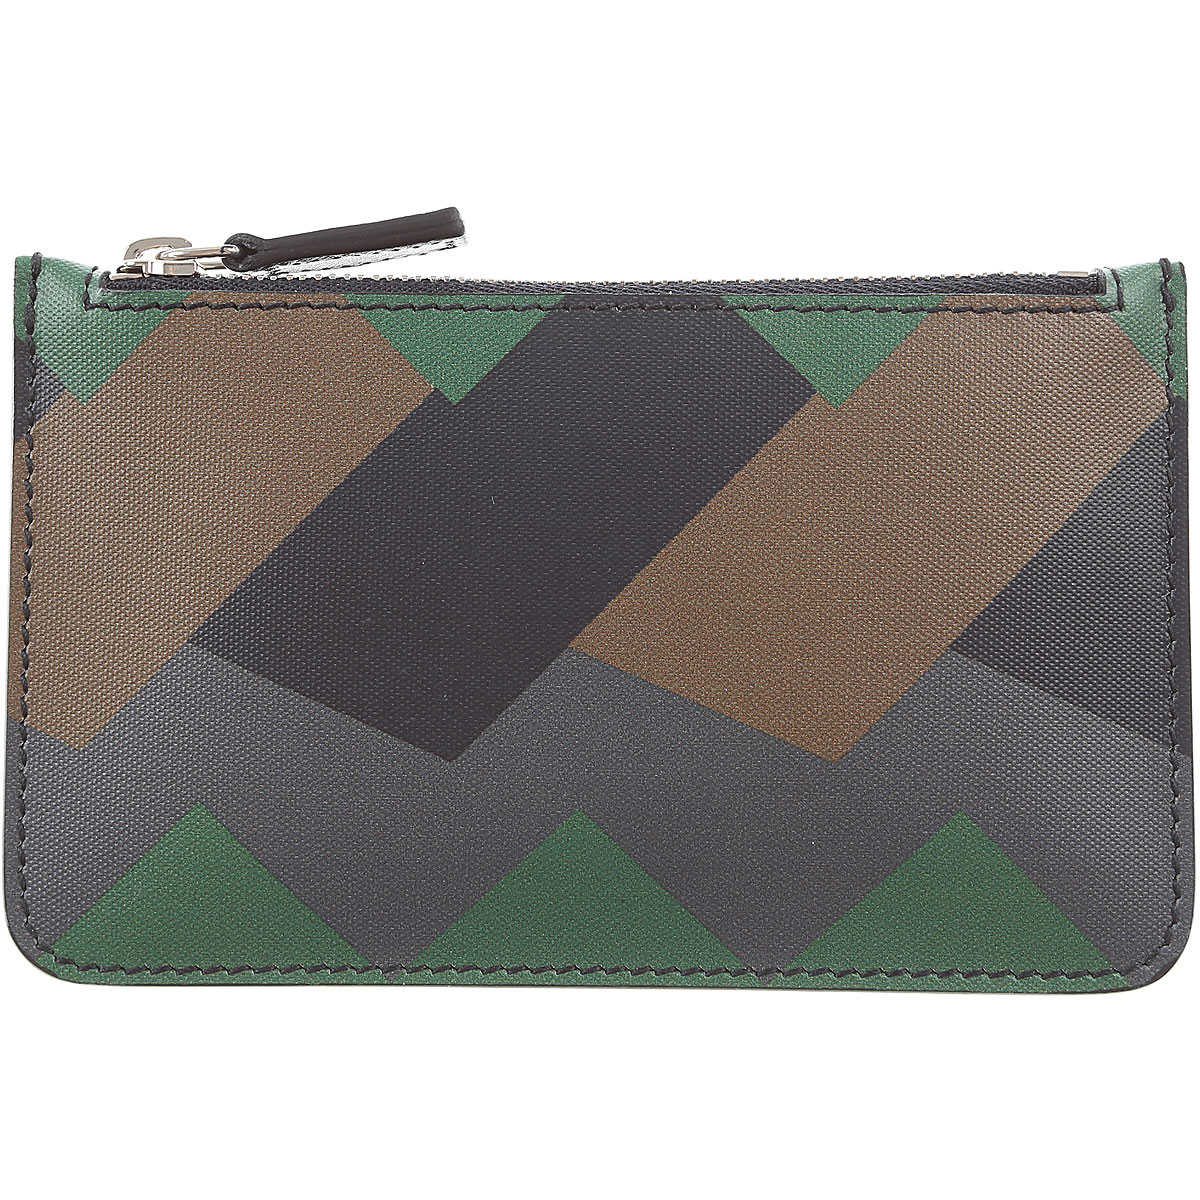 Salvatore Ferragamo Wallet for Men On Sale in Outlet Green SE - GOOFASH